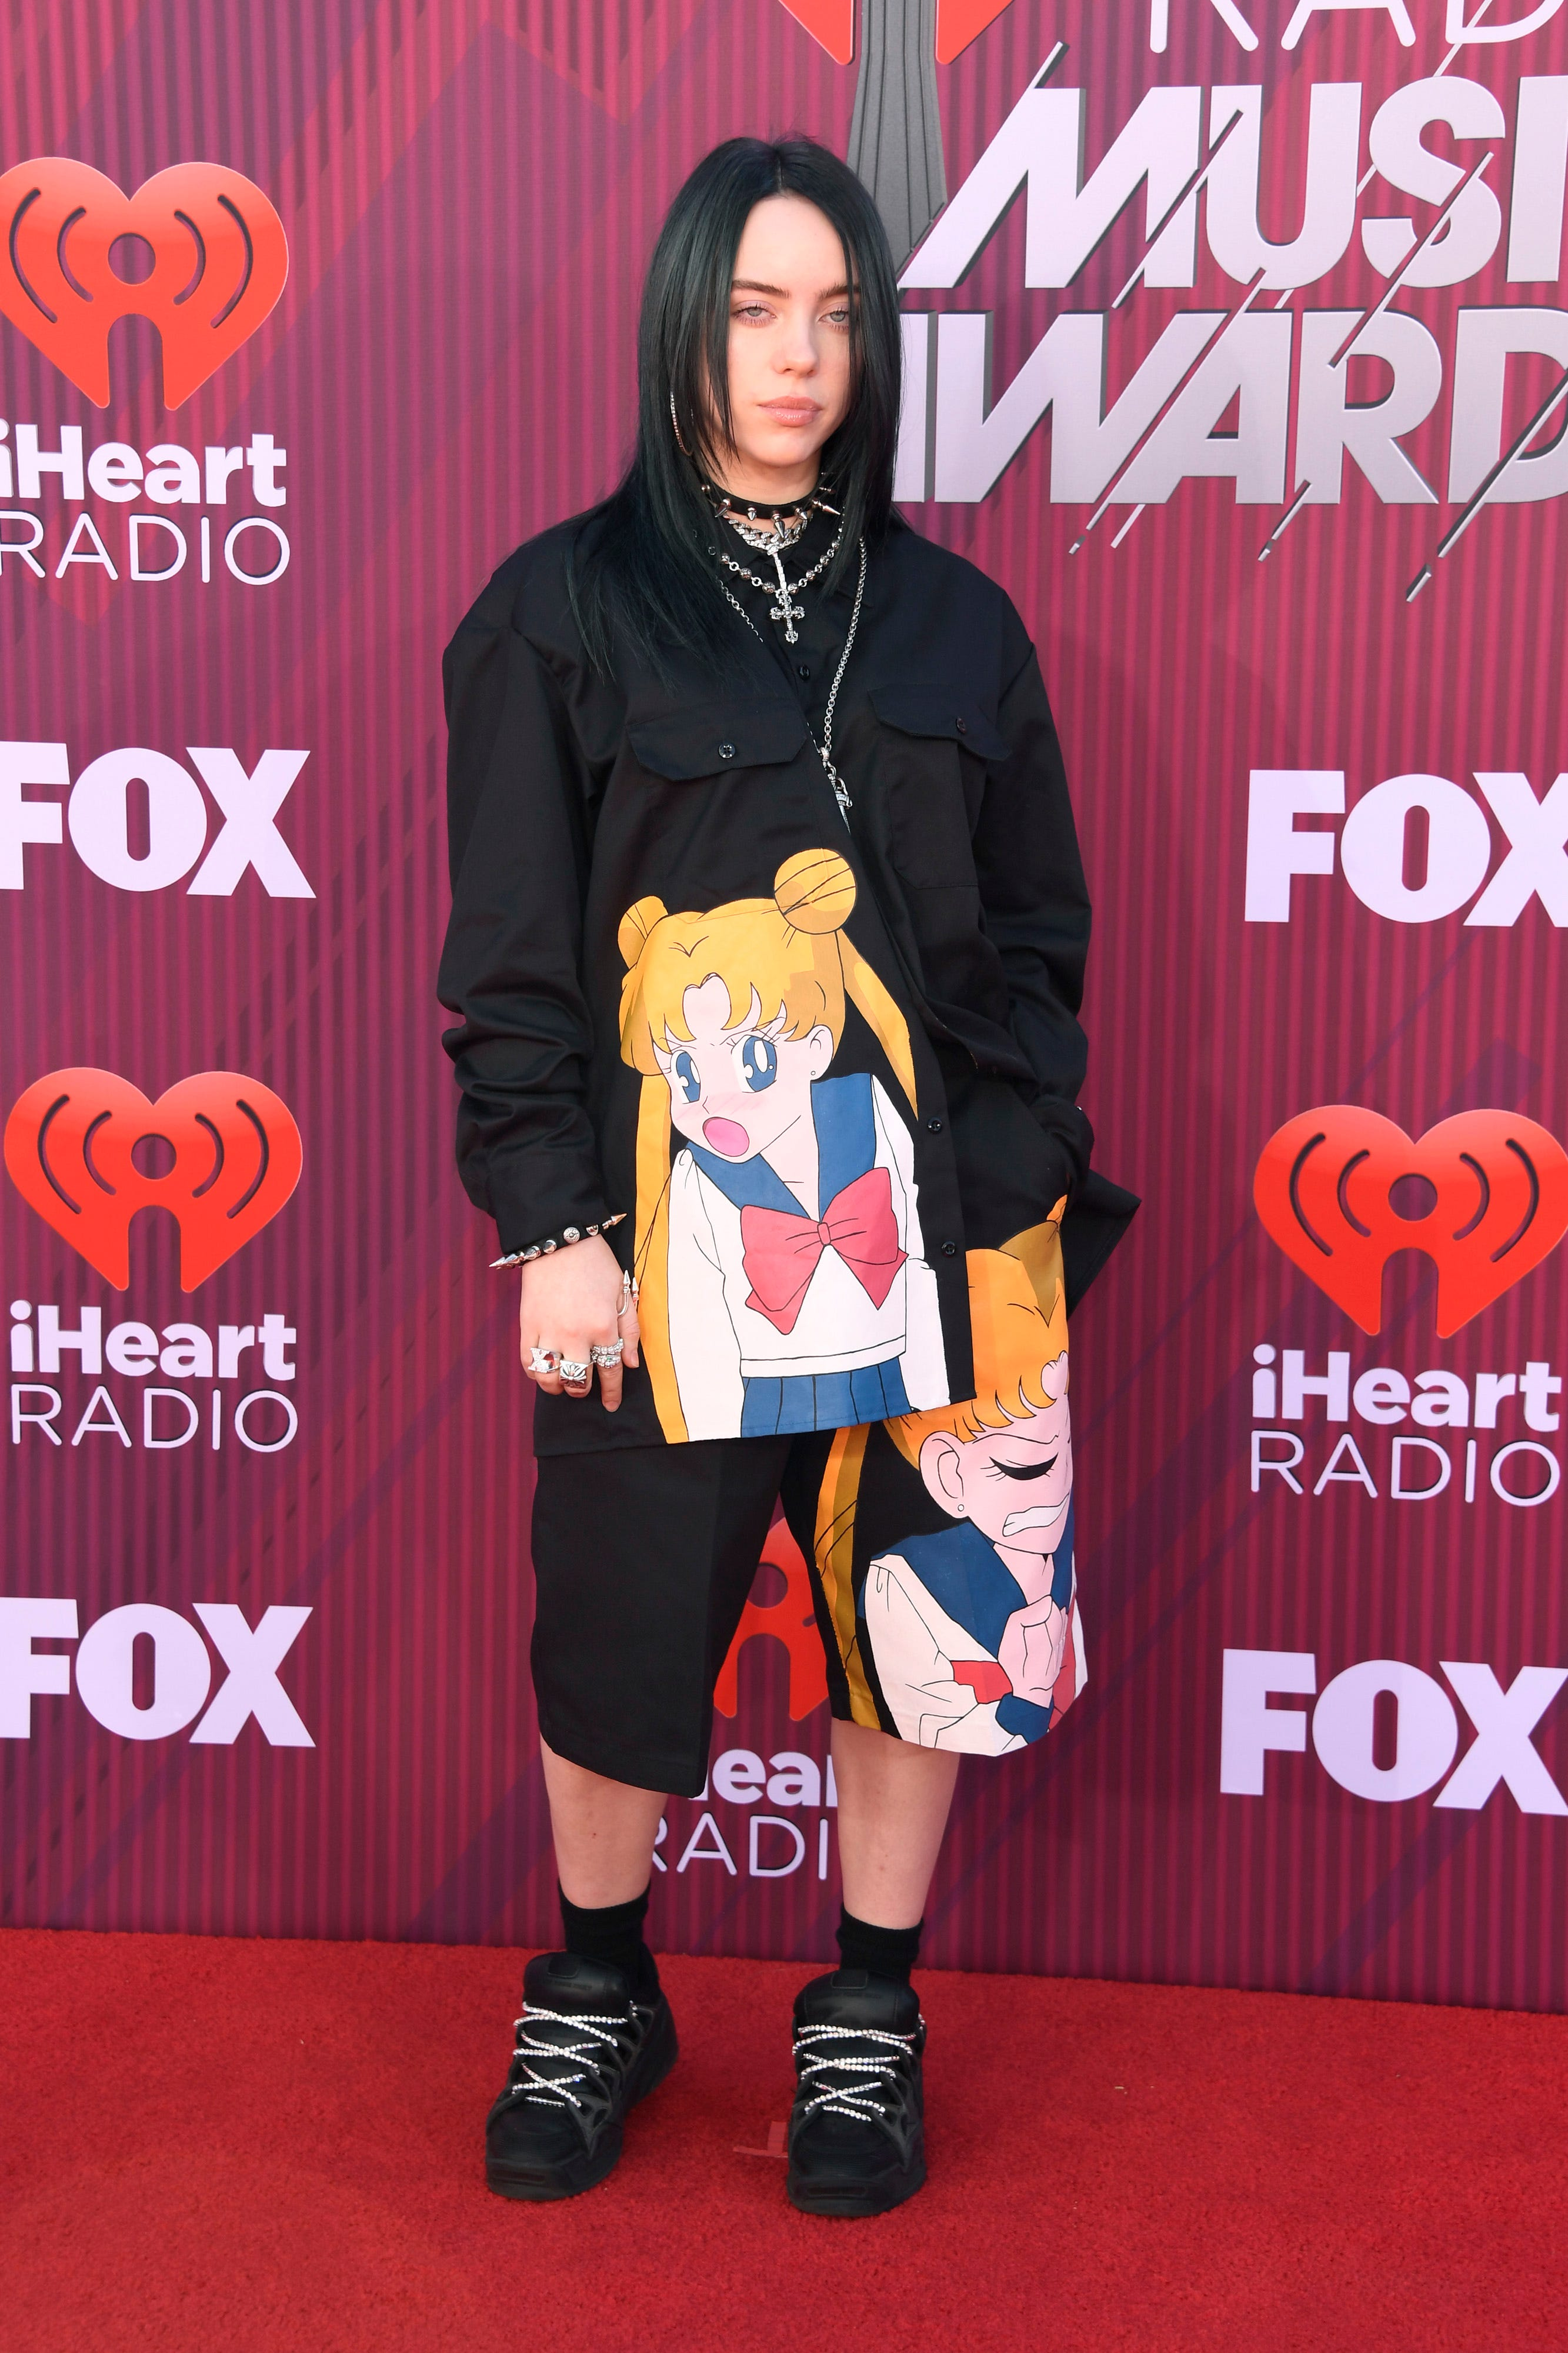 Billie Eilish Says She Wears Baggy Clothes So People Can T Bodyshame